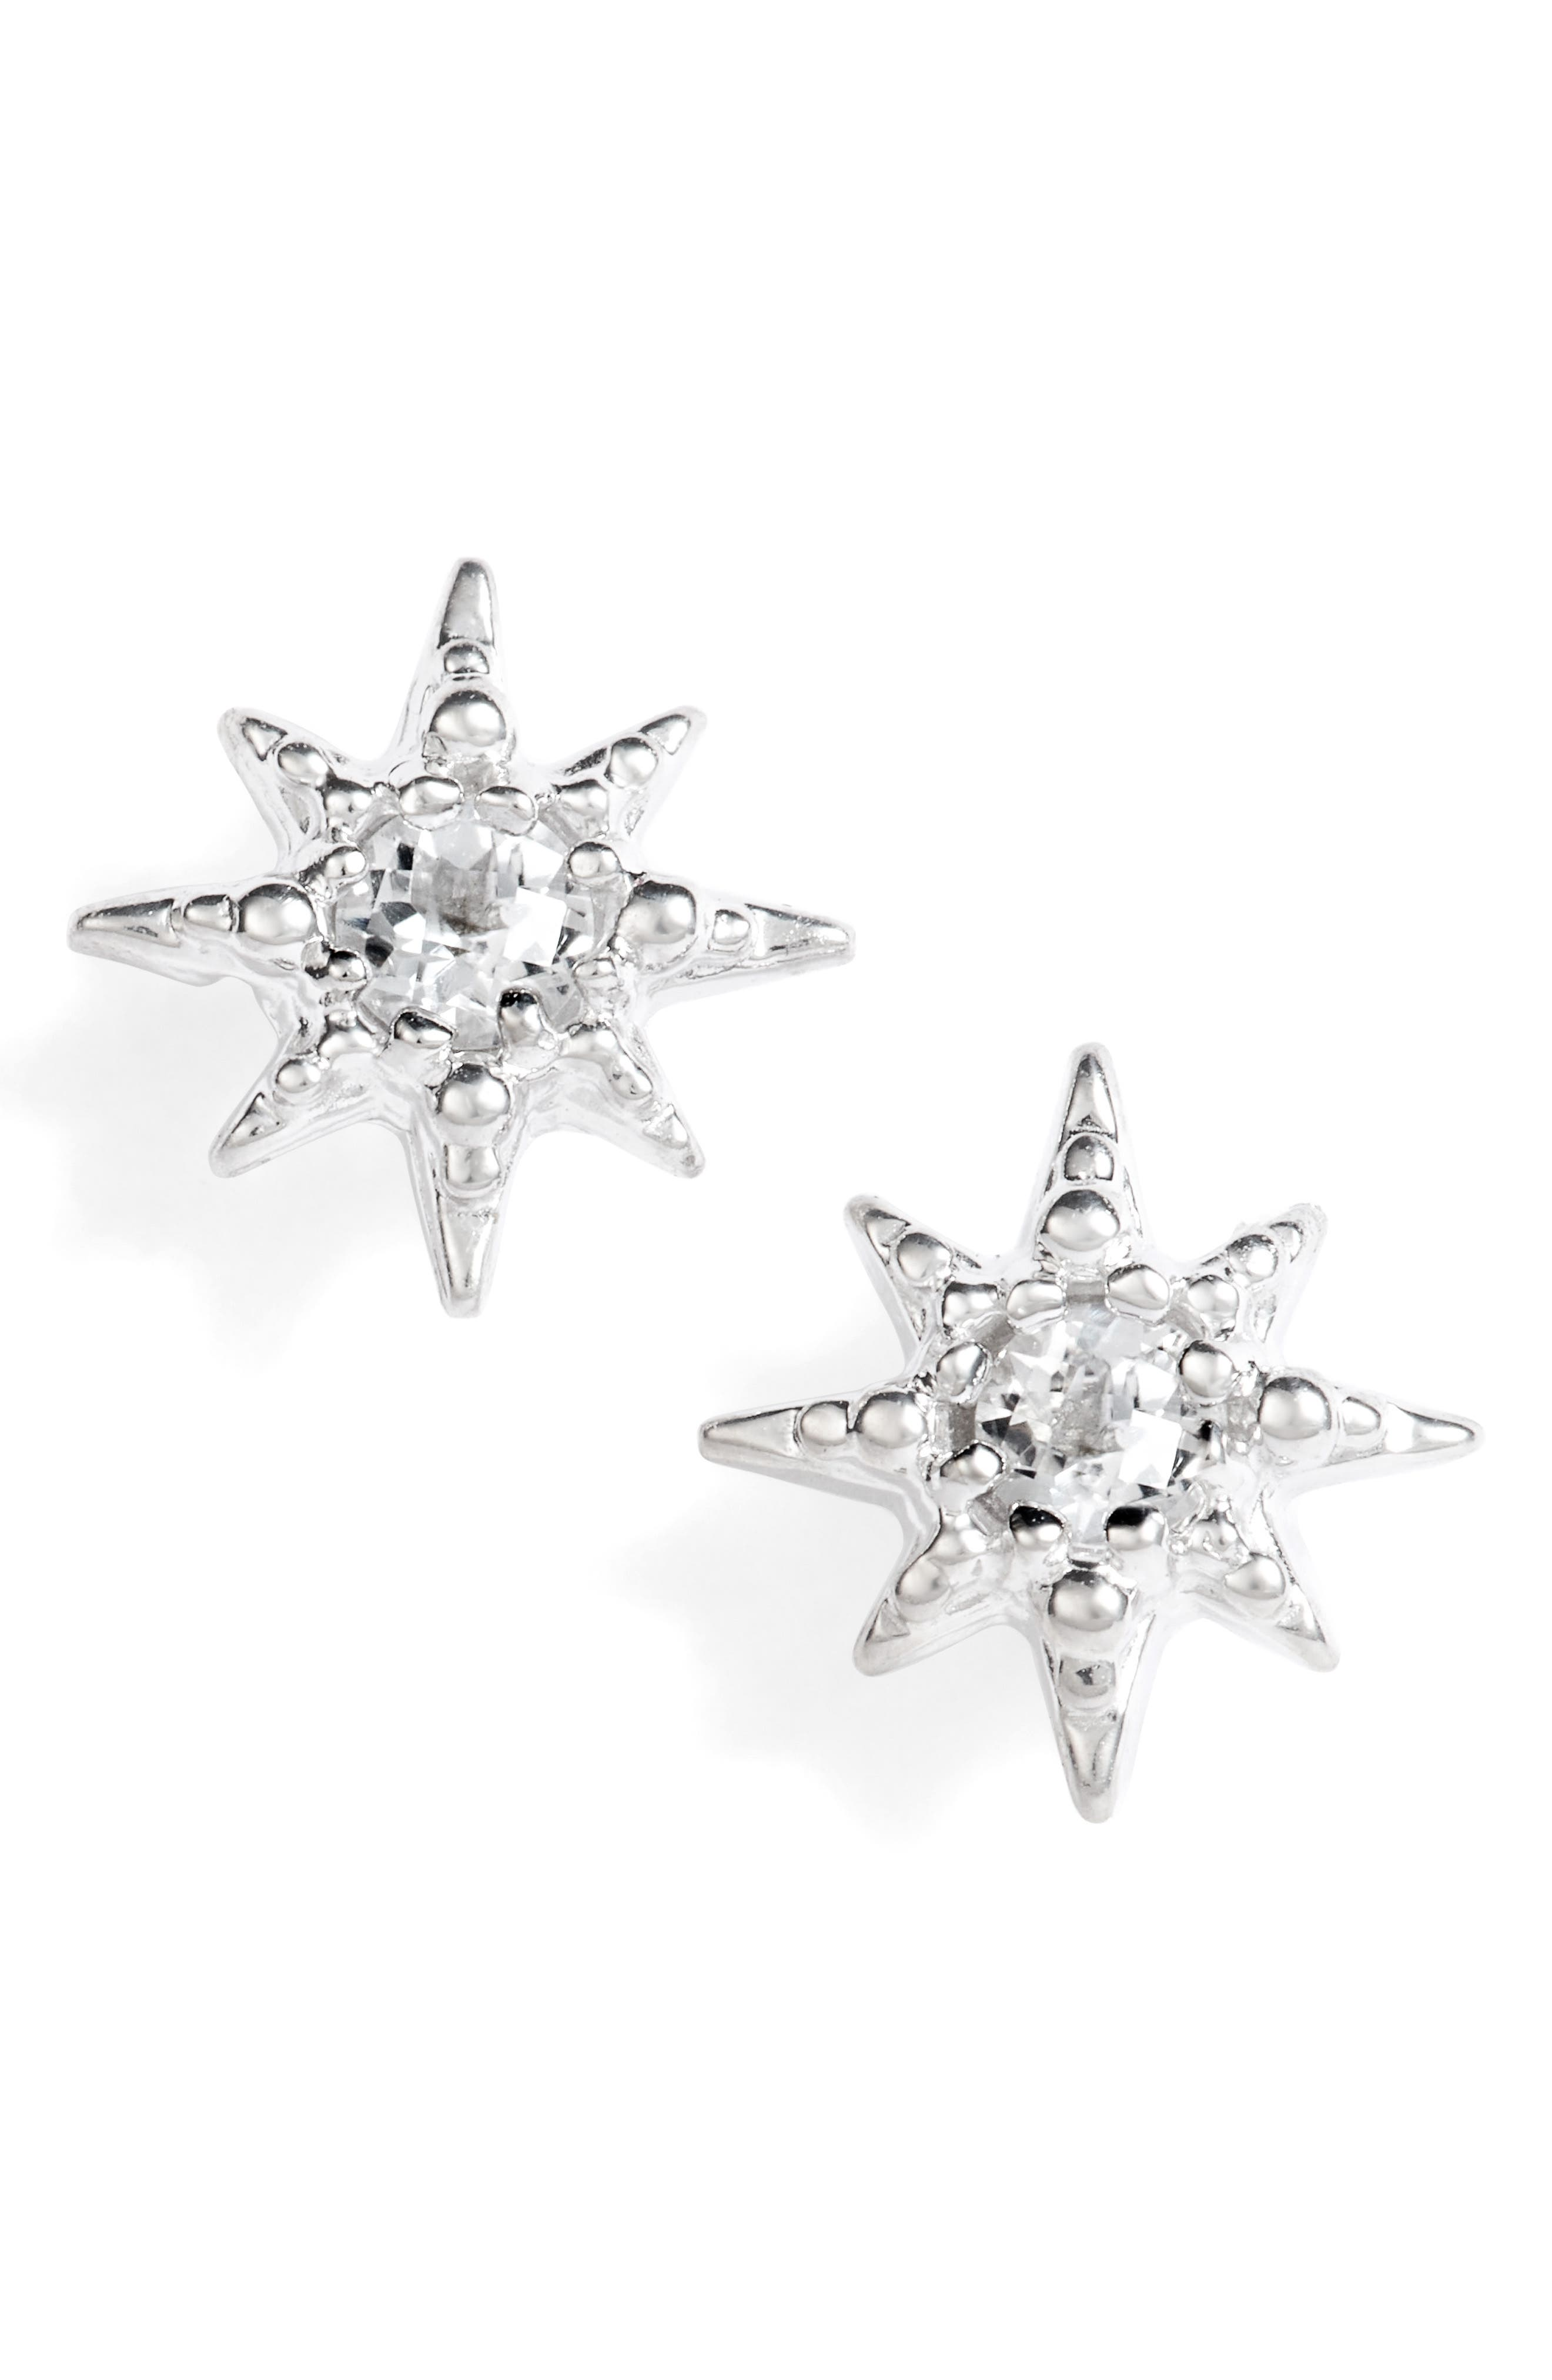 Micro Aztec Starburst Earrings,                         Main,                         color, Silver